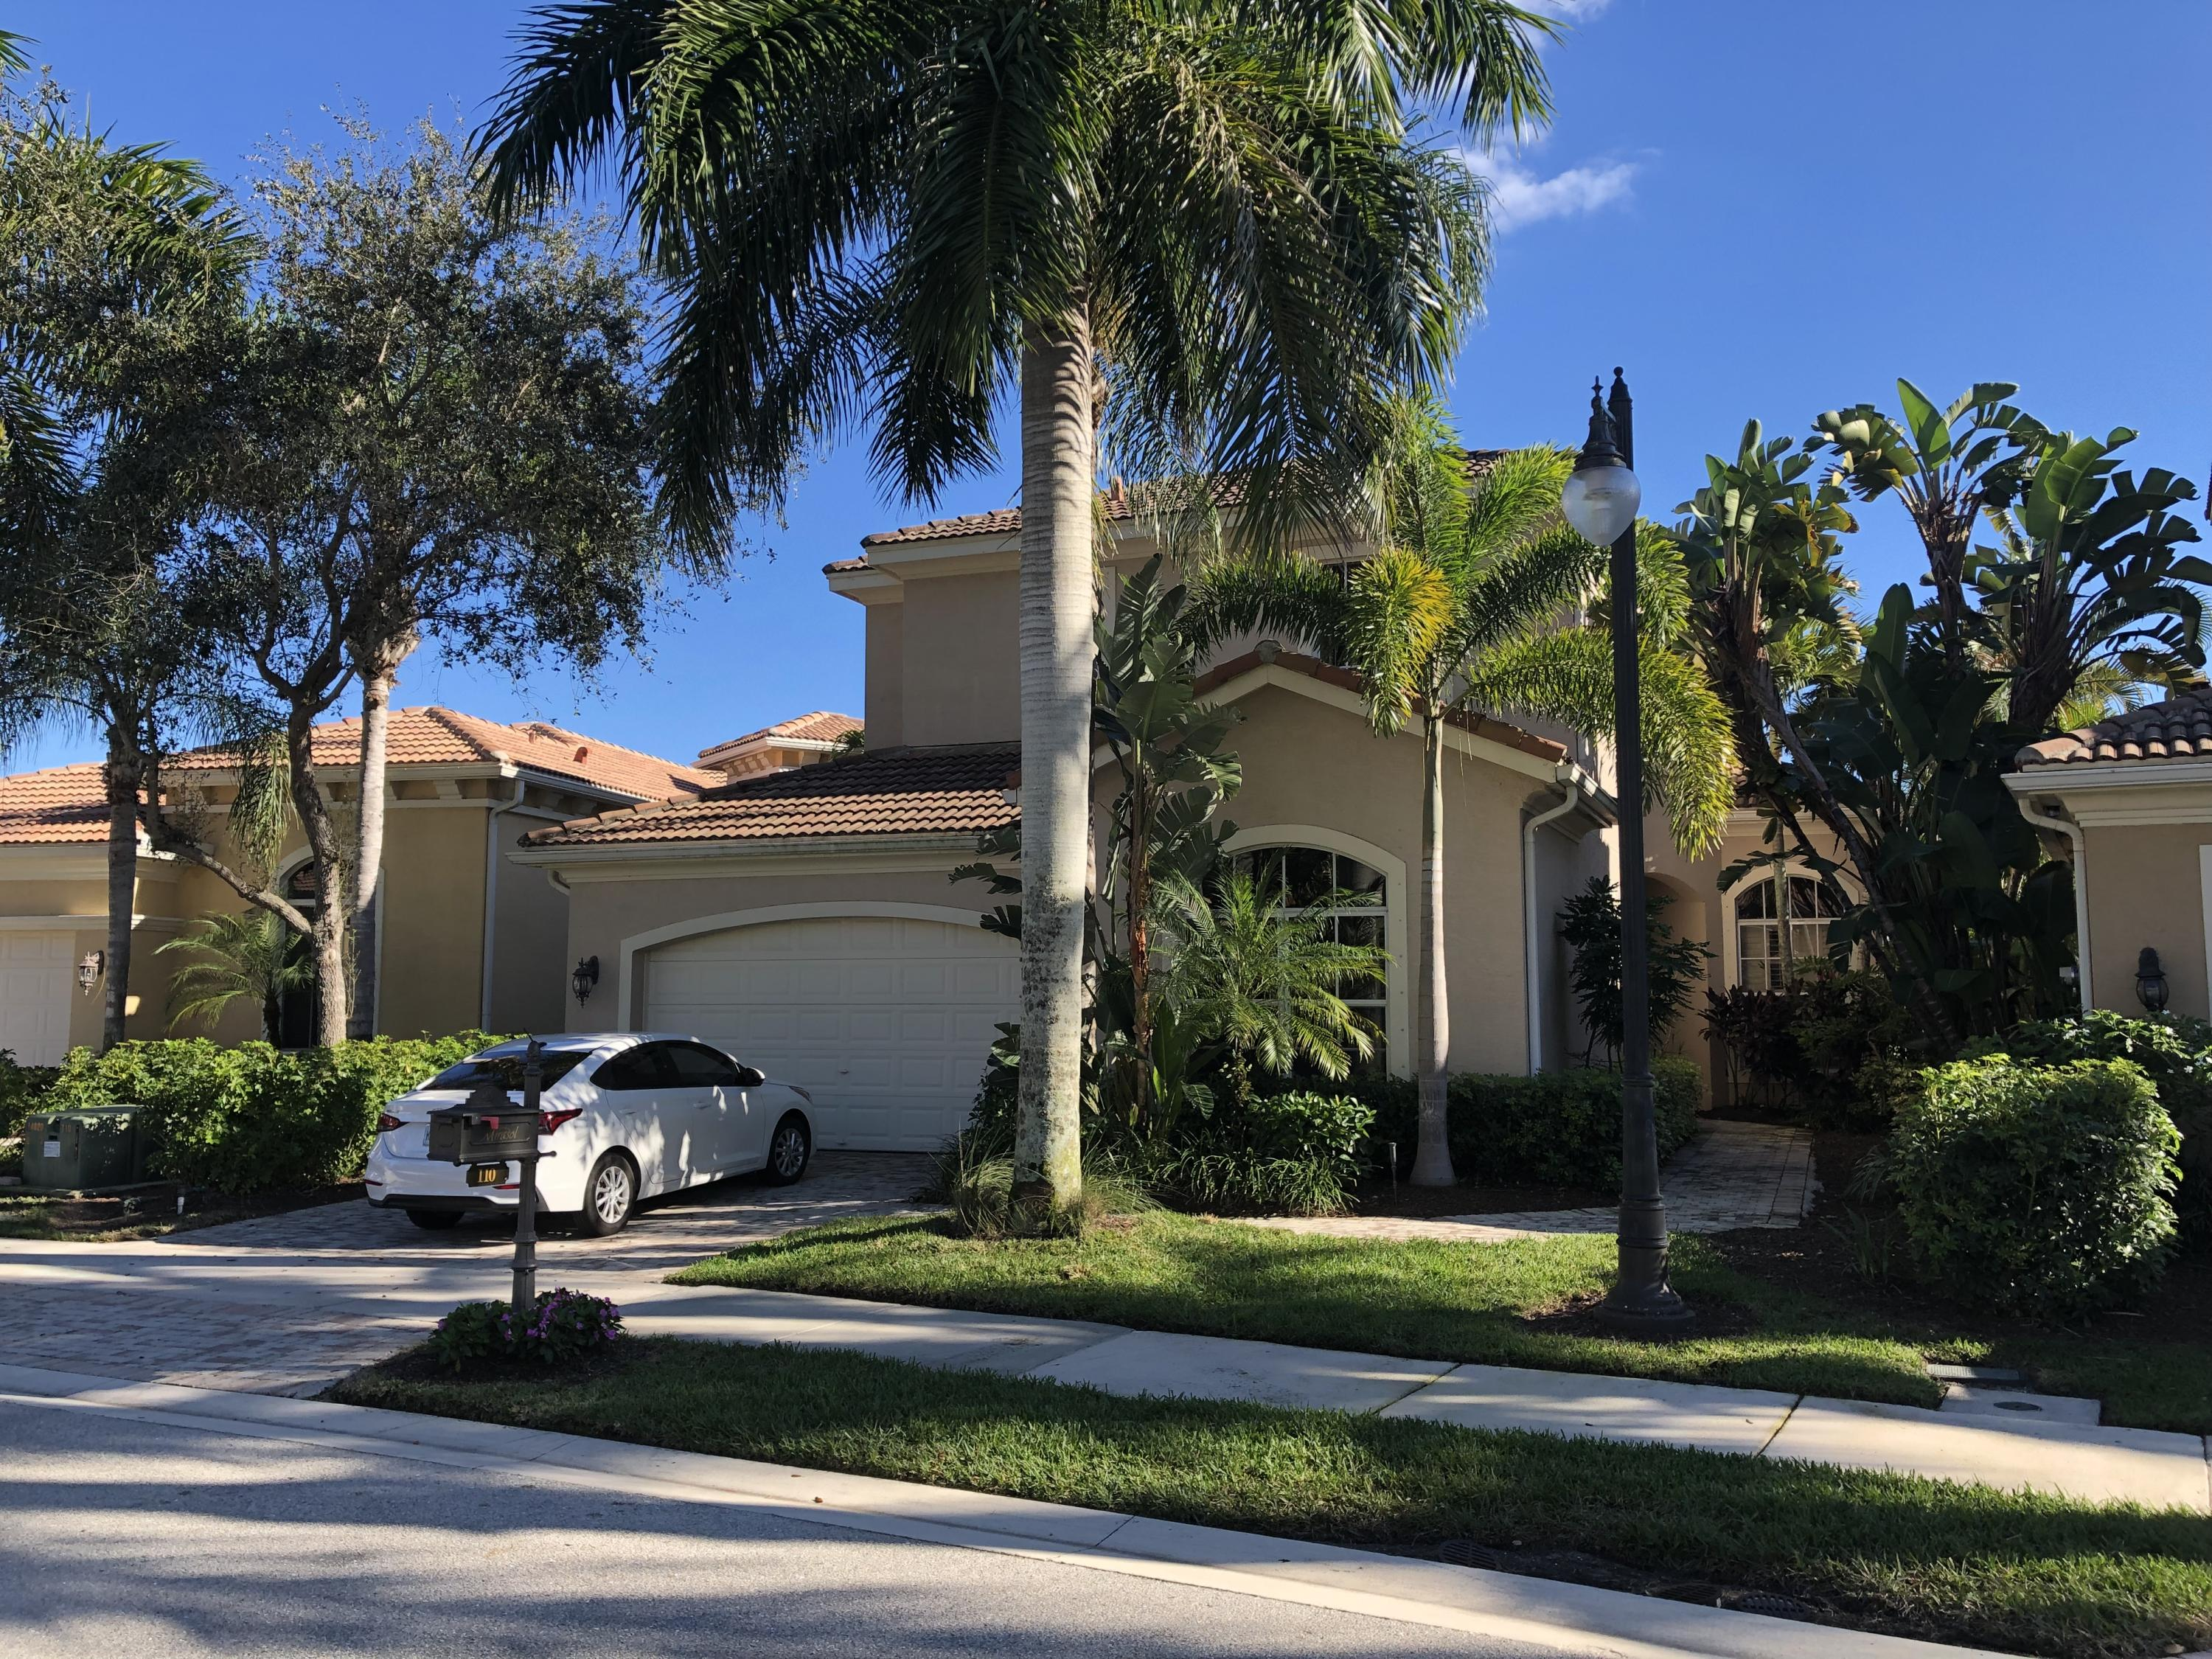 110 Andalusia Way, Palm Beach Gardens, Florida 33418, 4 Bedrooms Bedrooms, ,3 BathroomsBathrooms,A,Single family,Andalusia,RX-10494864